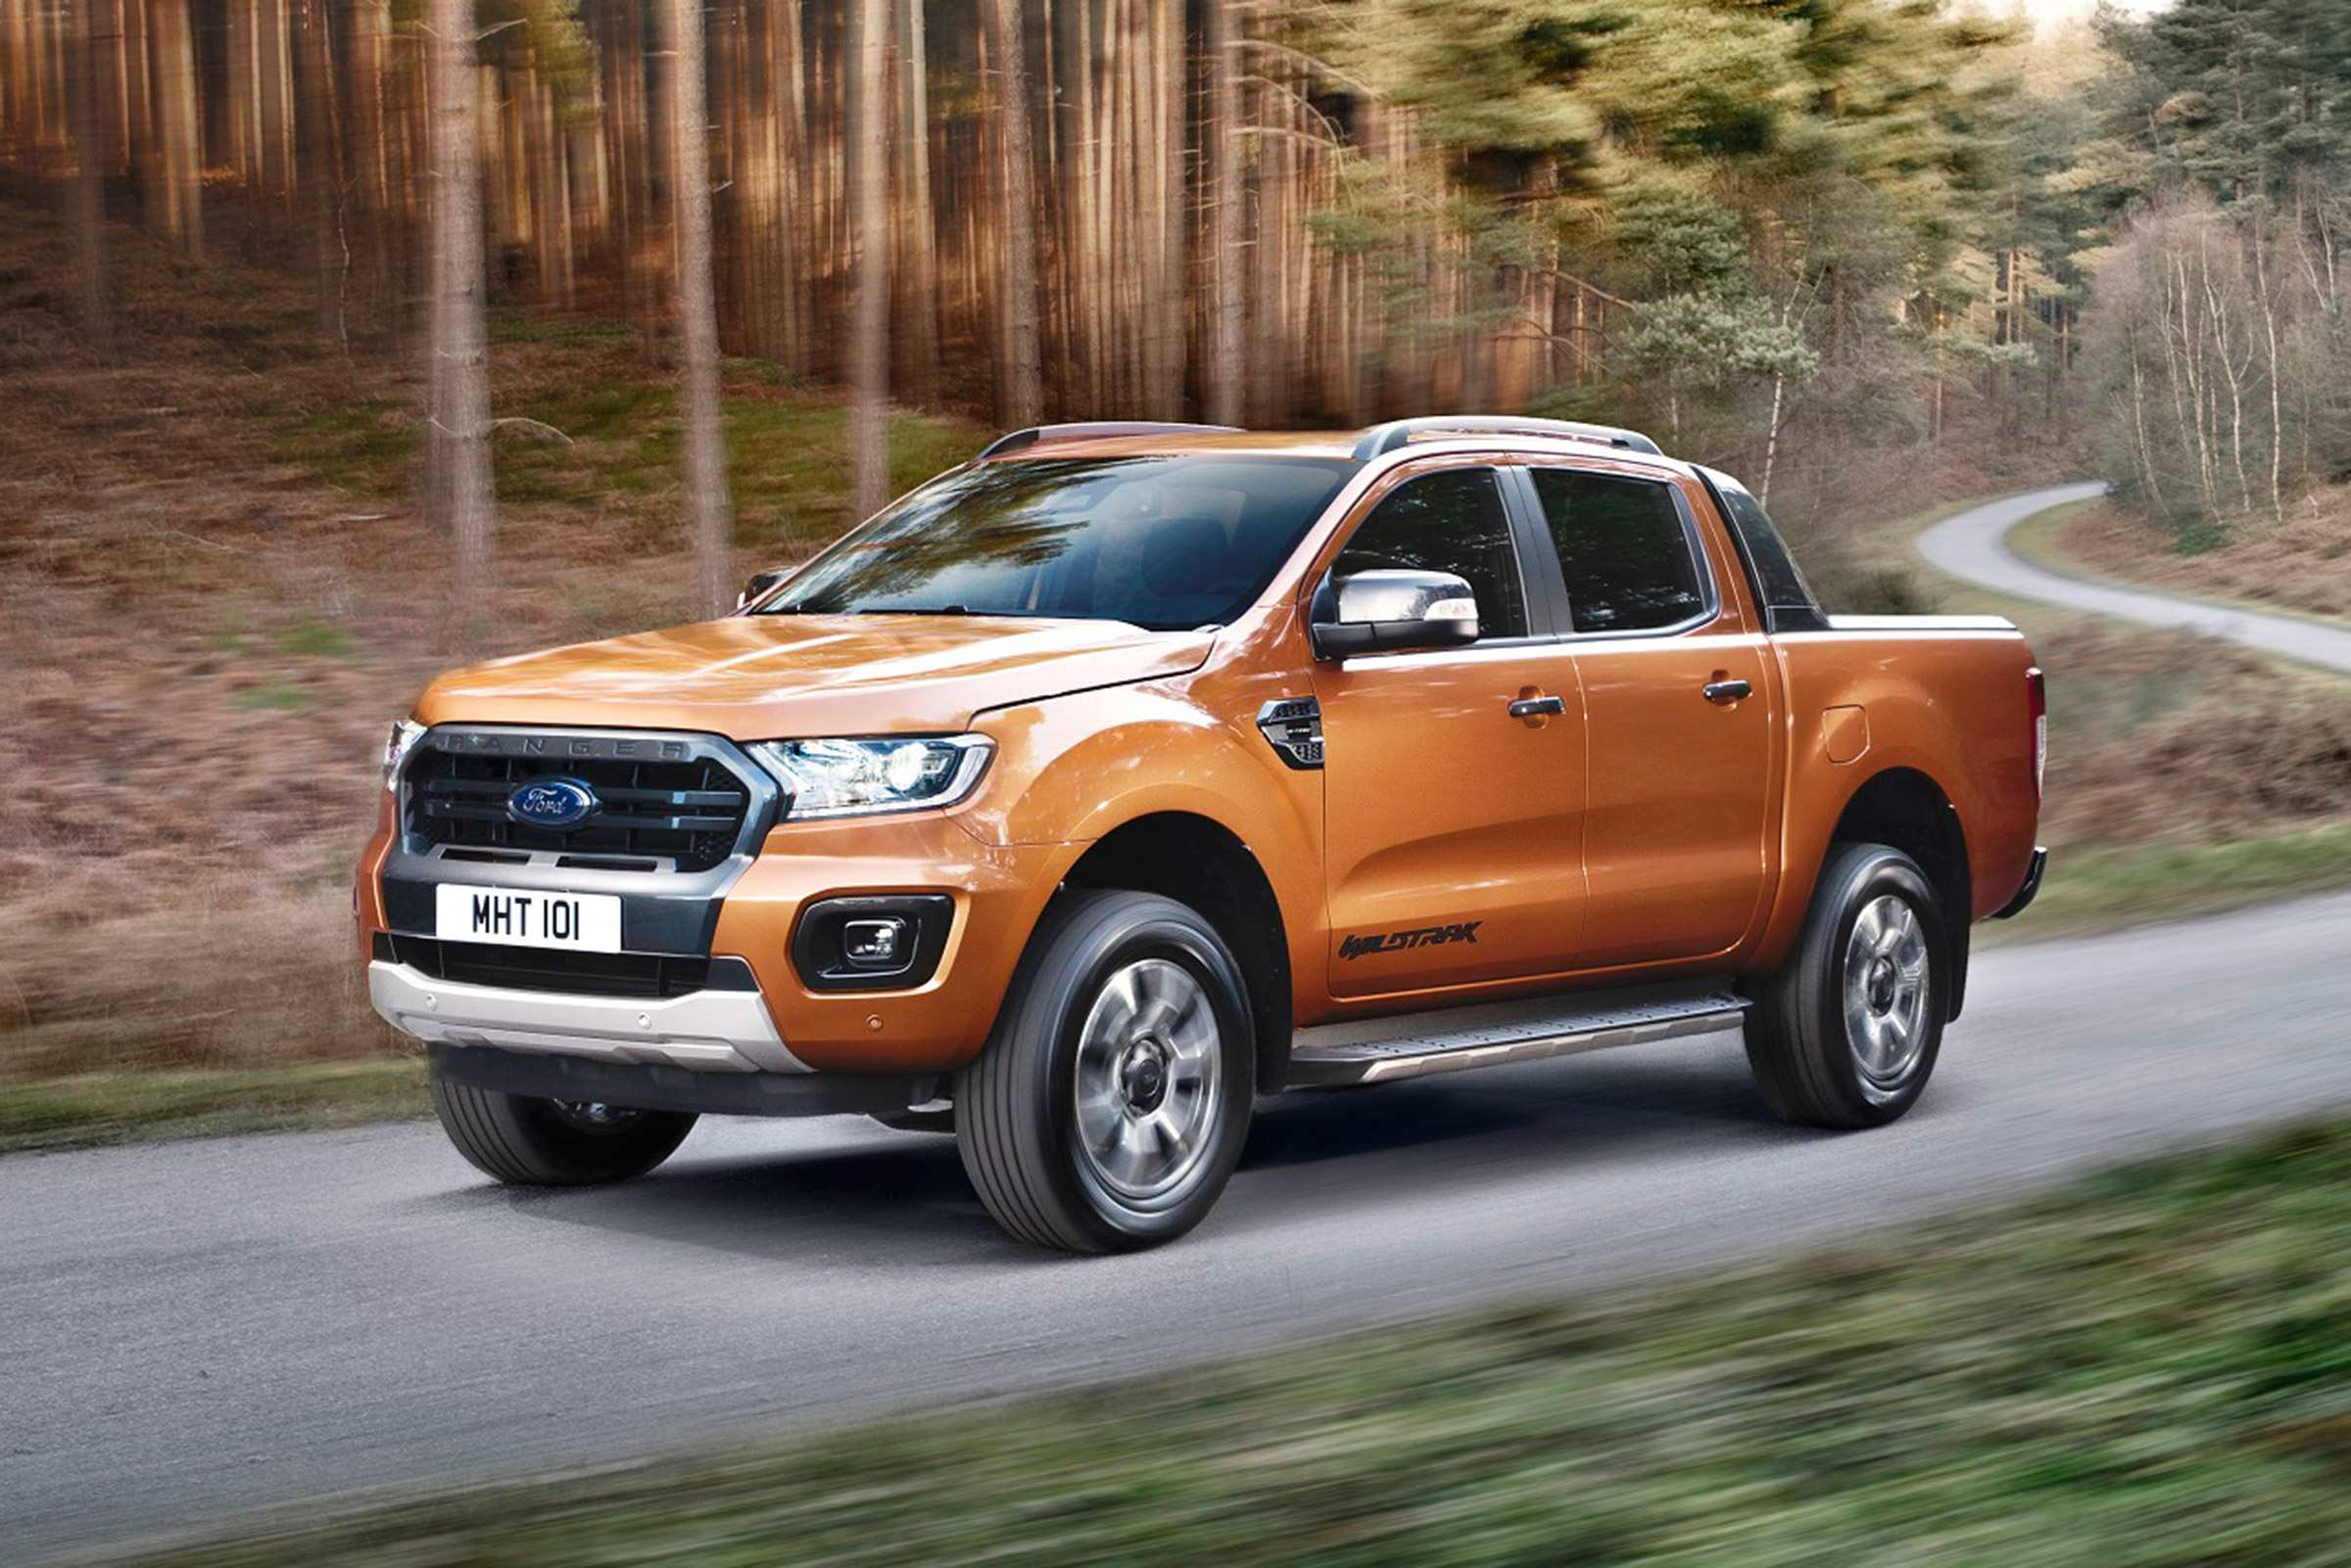 21 Gallery of Best Ford Wildtrak 2019 Release Date Picture for Best Ford Wildtrak 2019 Release Date